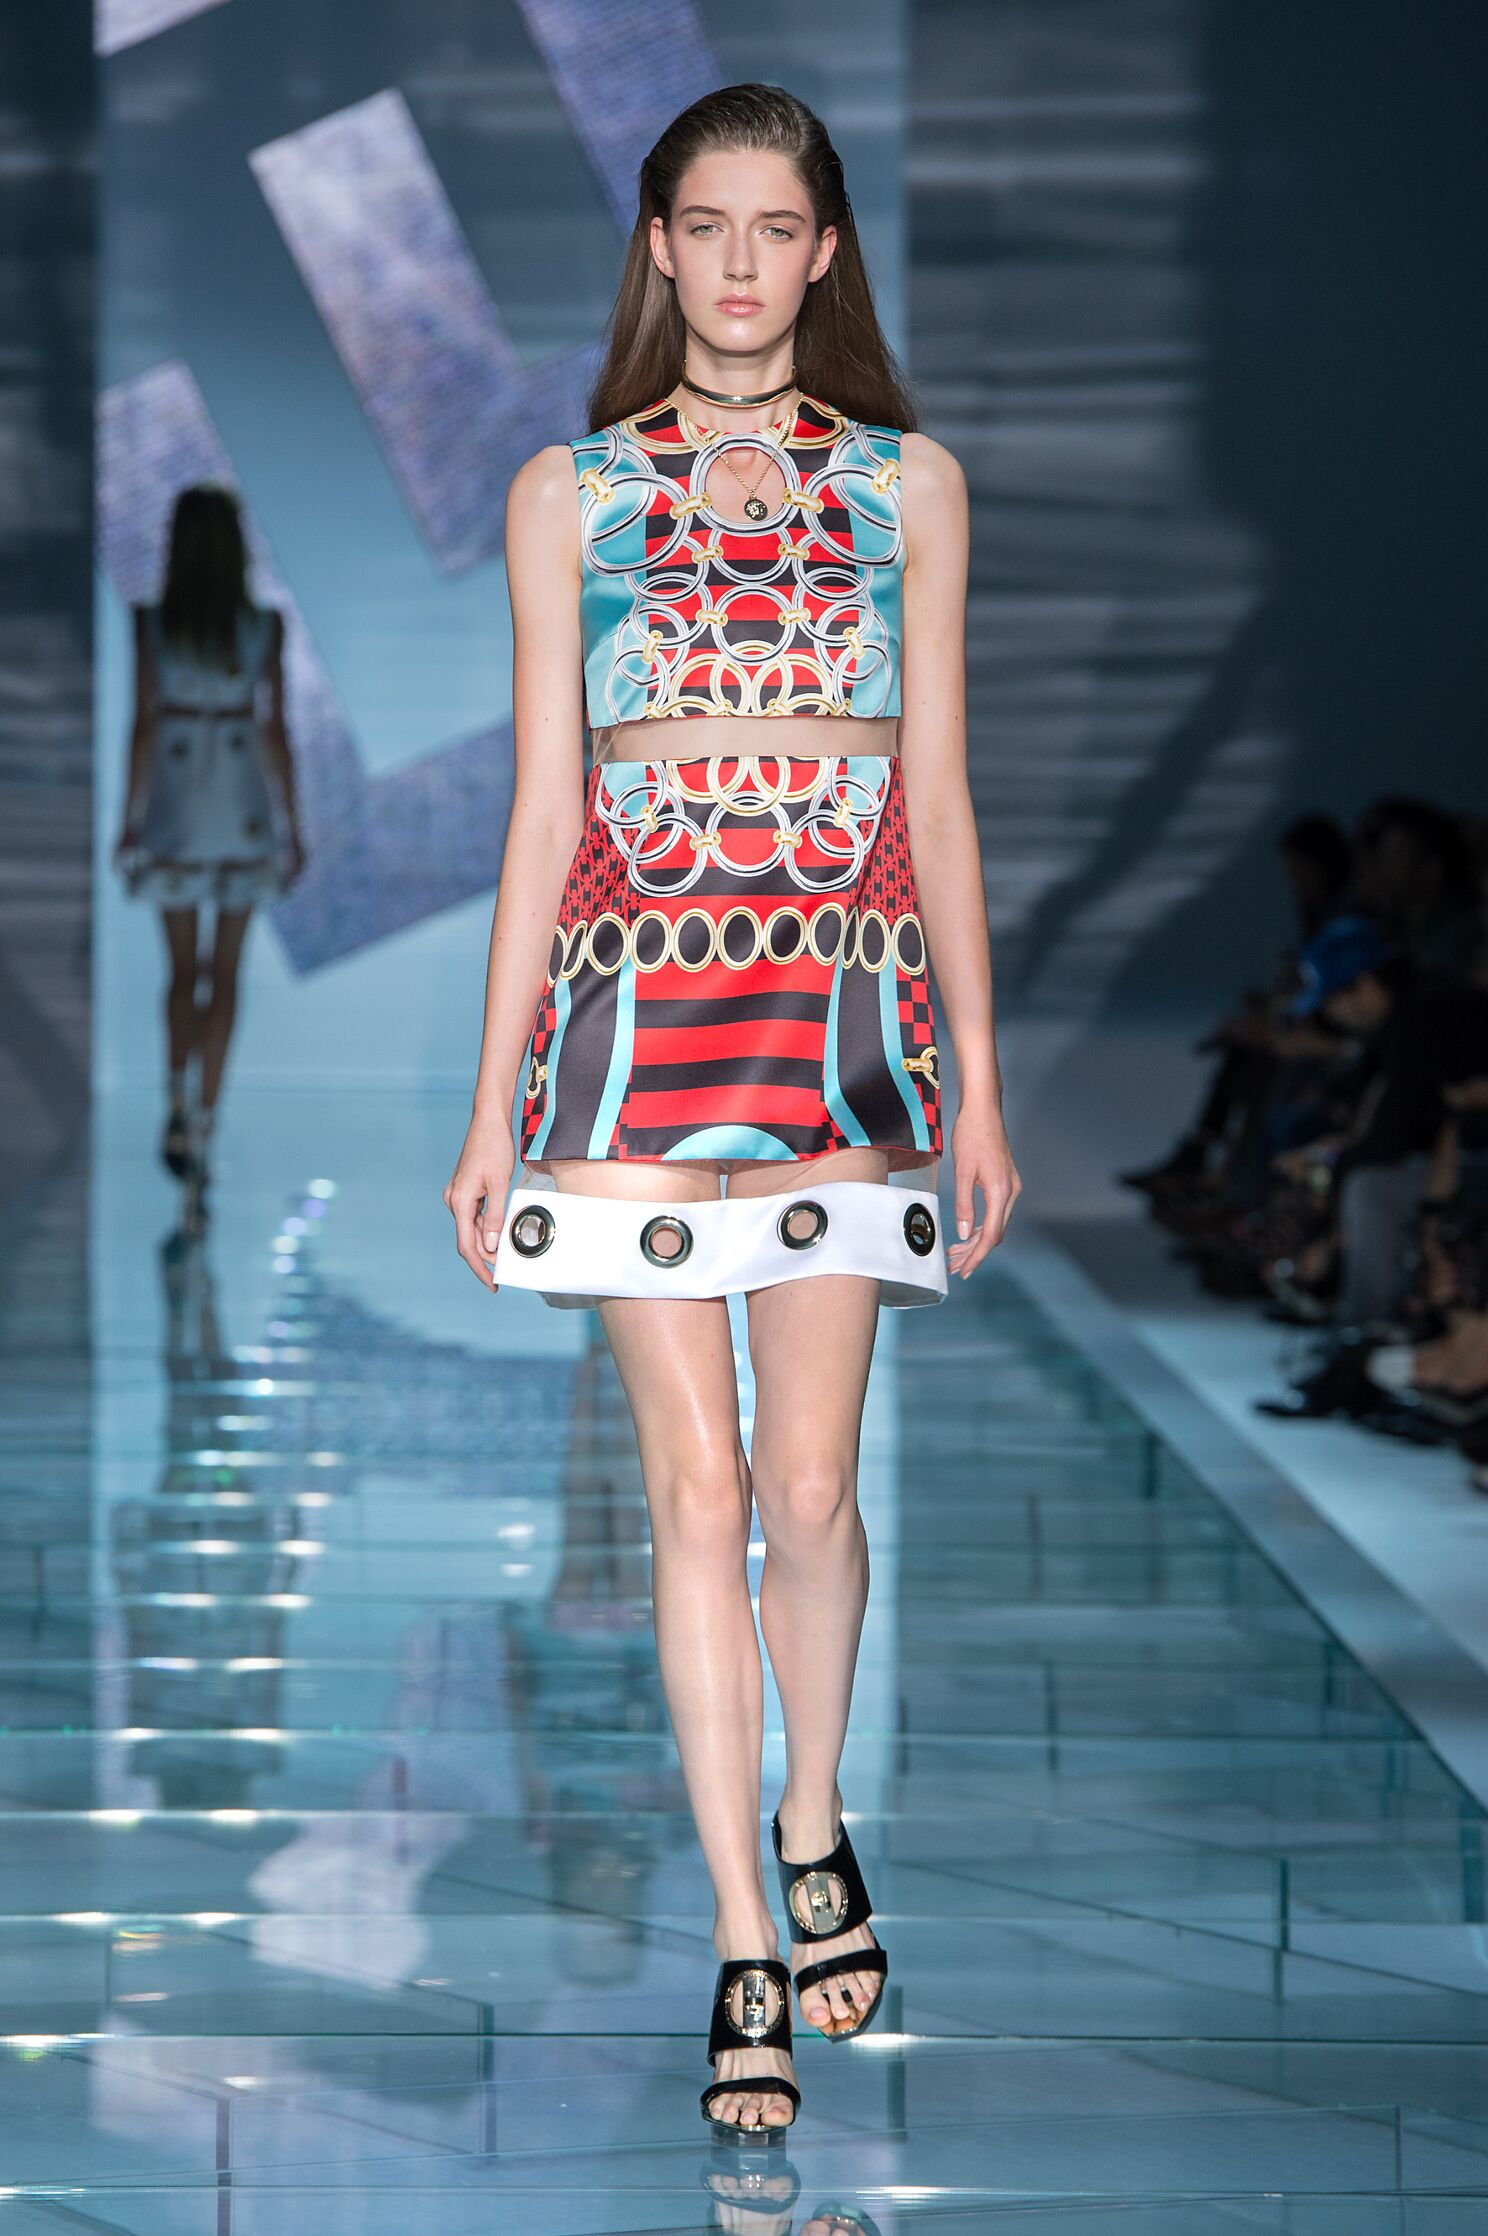 Versace Summer 2015 Catwalk